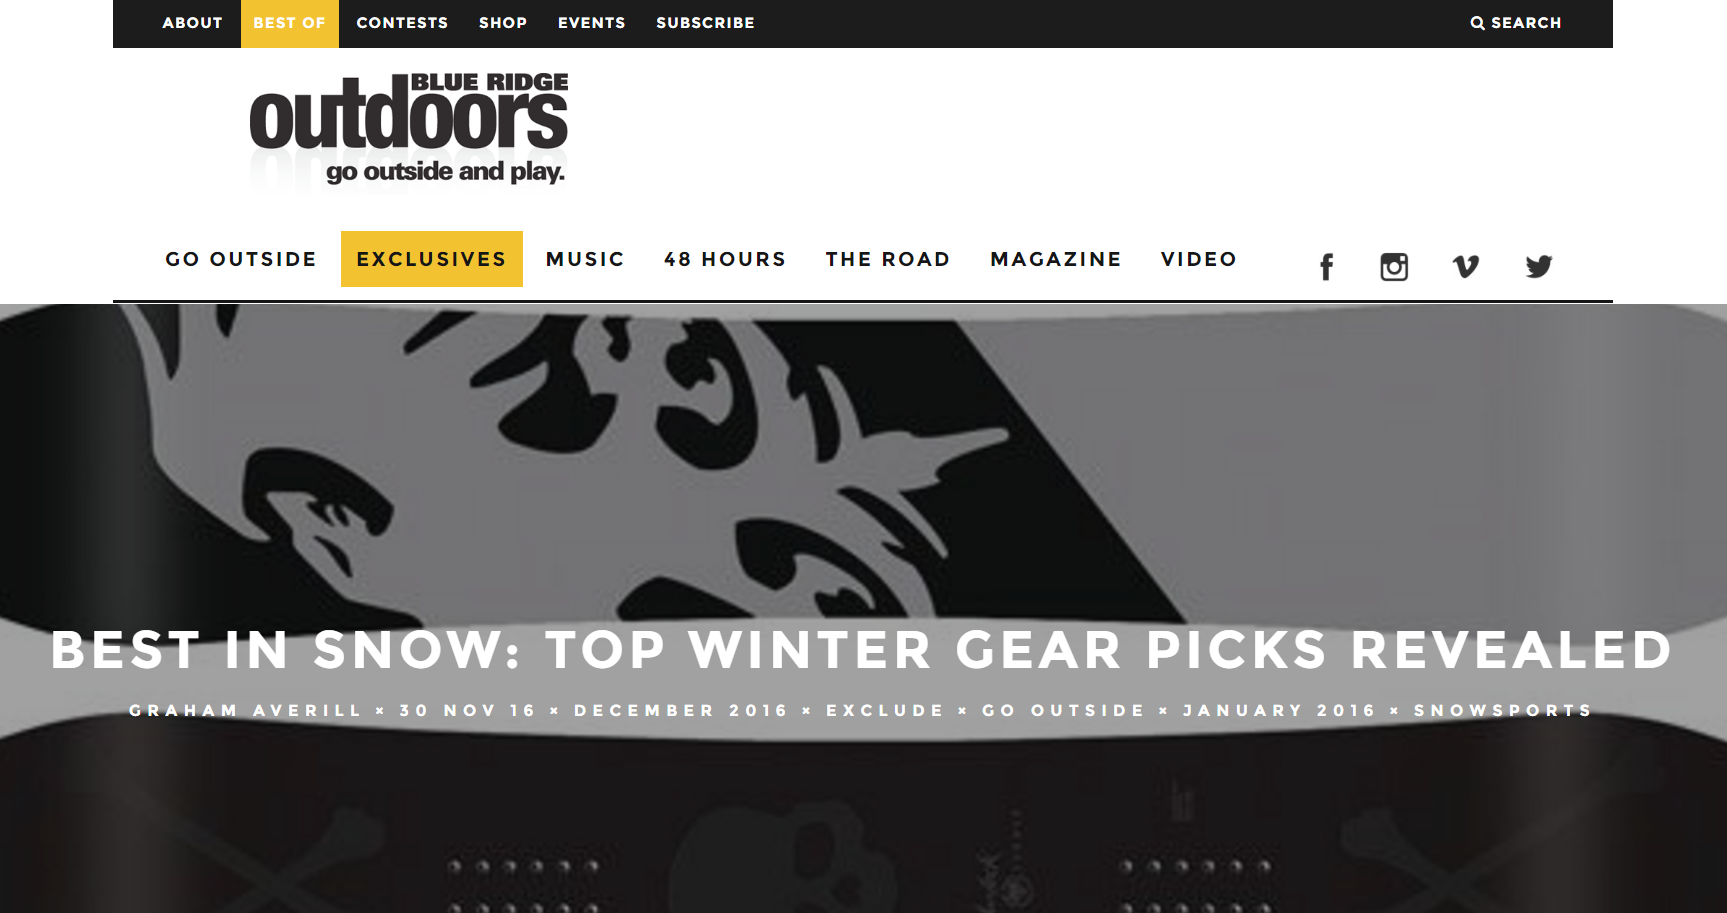 Are you a powder addict? Check out these top winter gear picks.